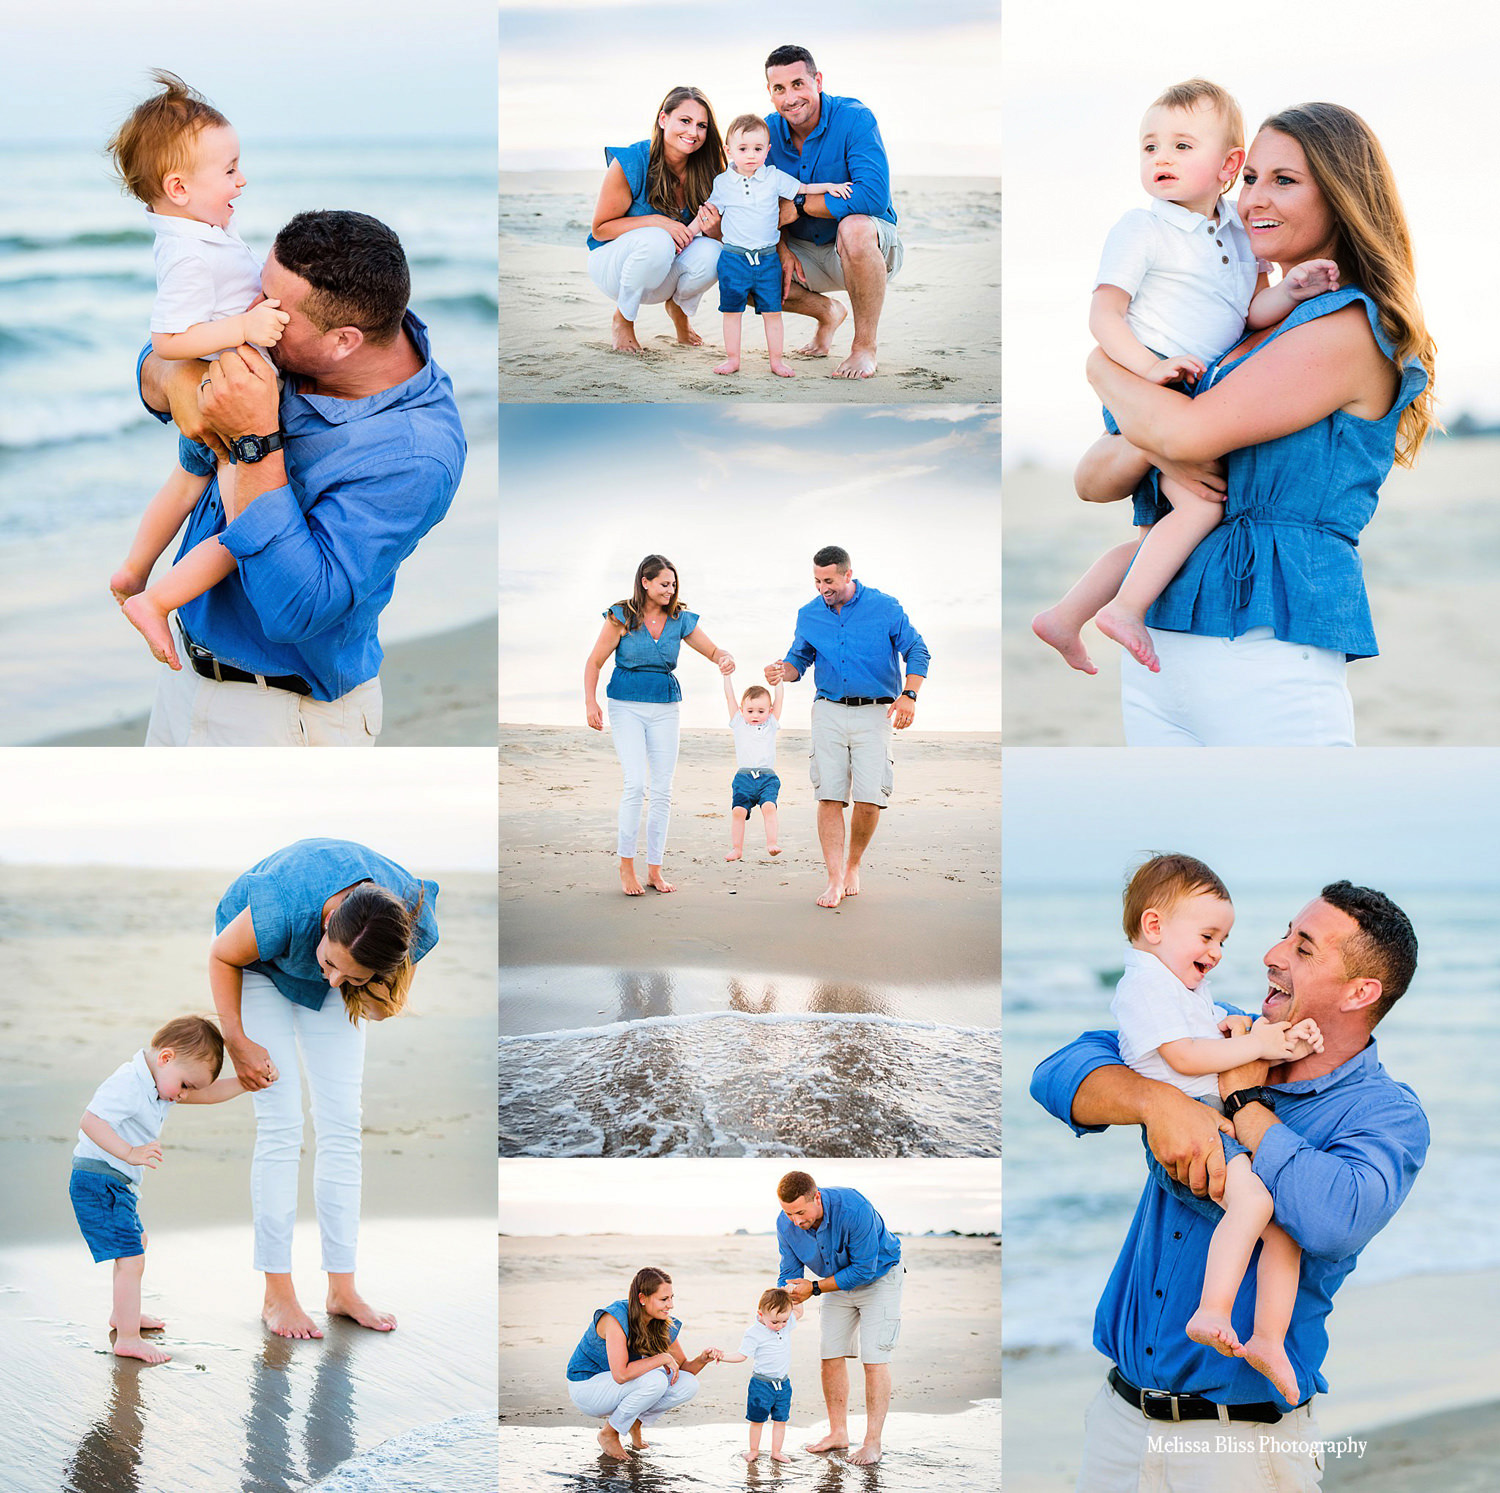 beach-mini-session-photos-virginia-beach-family-lifestyle-photographer-melissa-bliss-photography.jpg